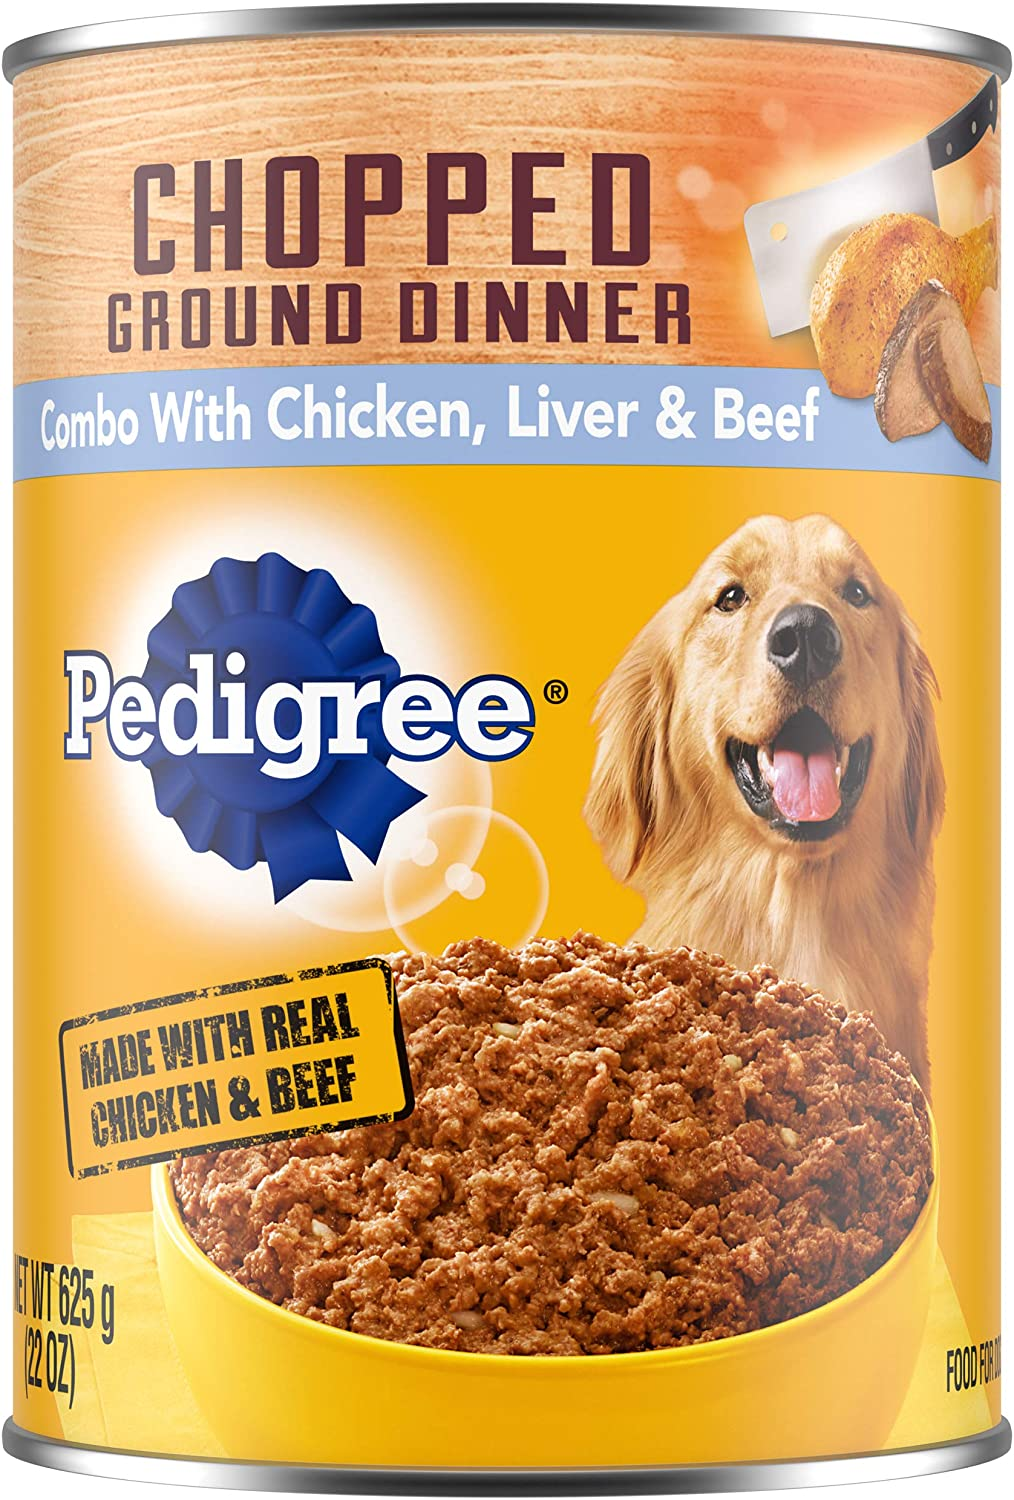 PEDIGREE Adult Canned Wet Dog Food Chopped Ground Dinner Combo with Chicken, Beef & Liver Flavor, (12) 22 oz. Cans